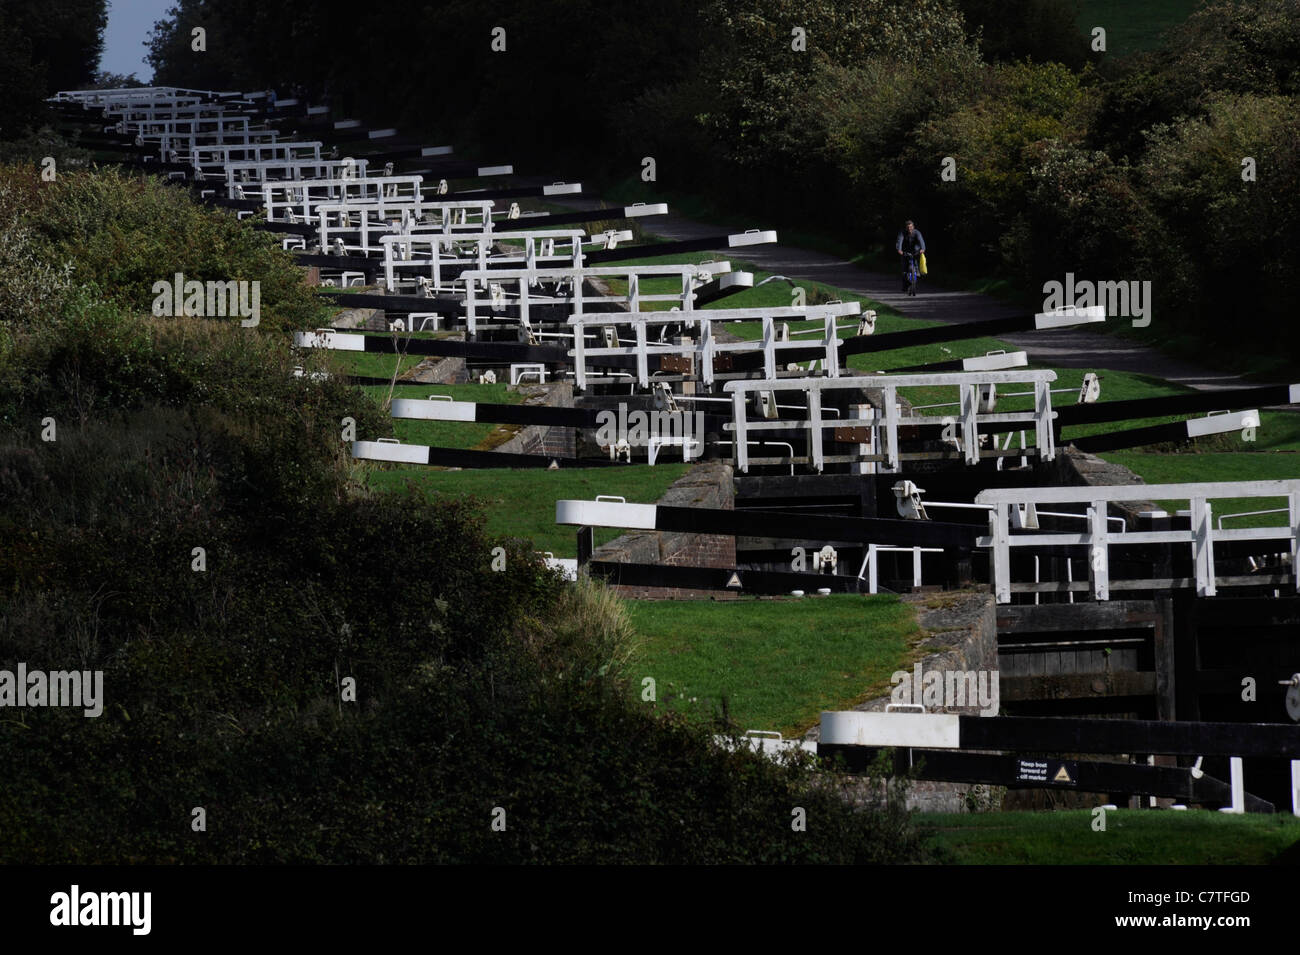 The Caen Hill locks on the Kennet and Avon Canal near Devizes, Wiltshire. - Stock Image